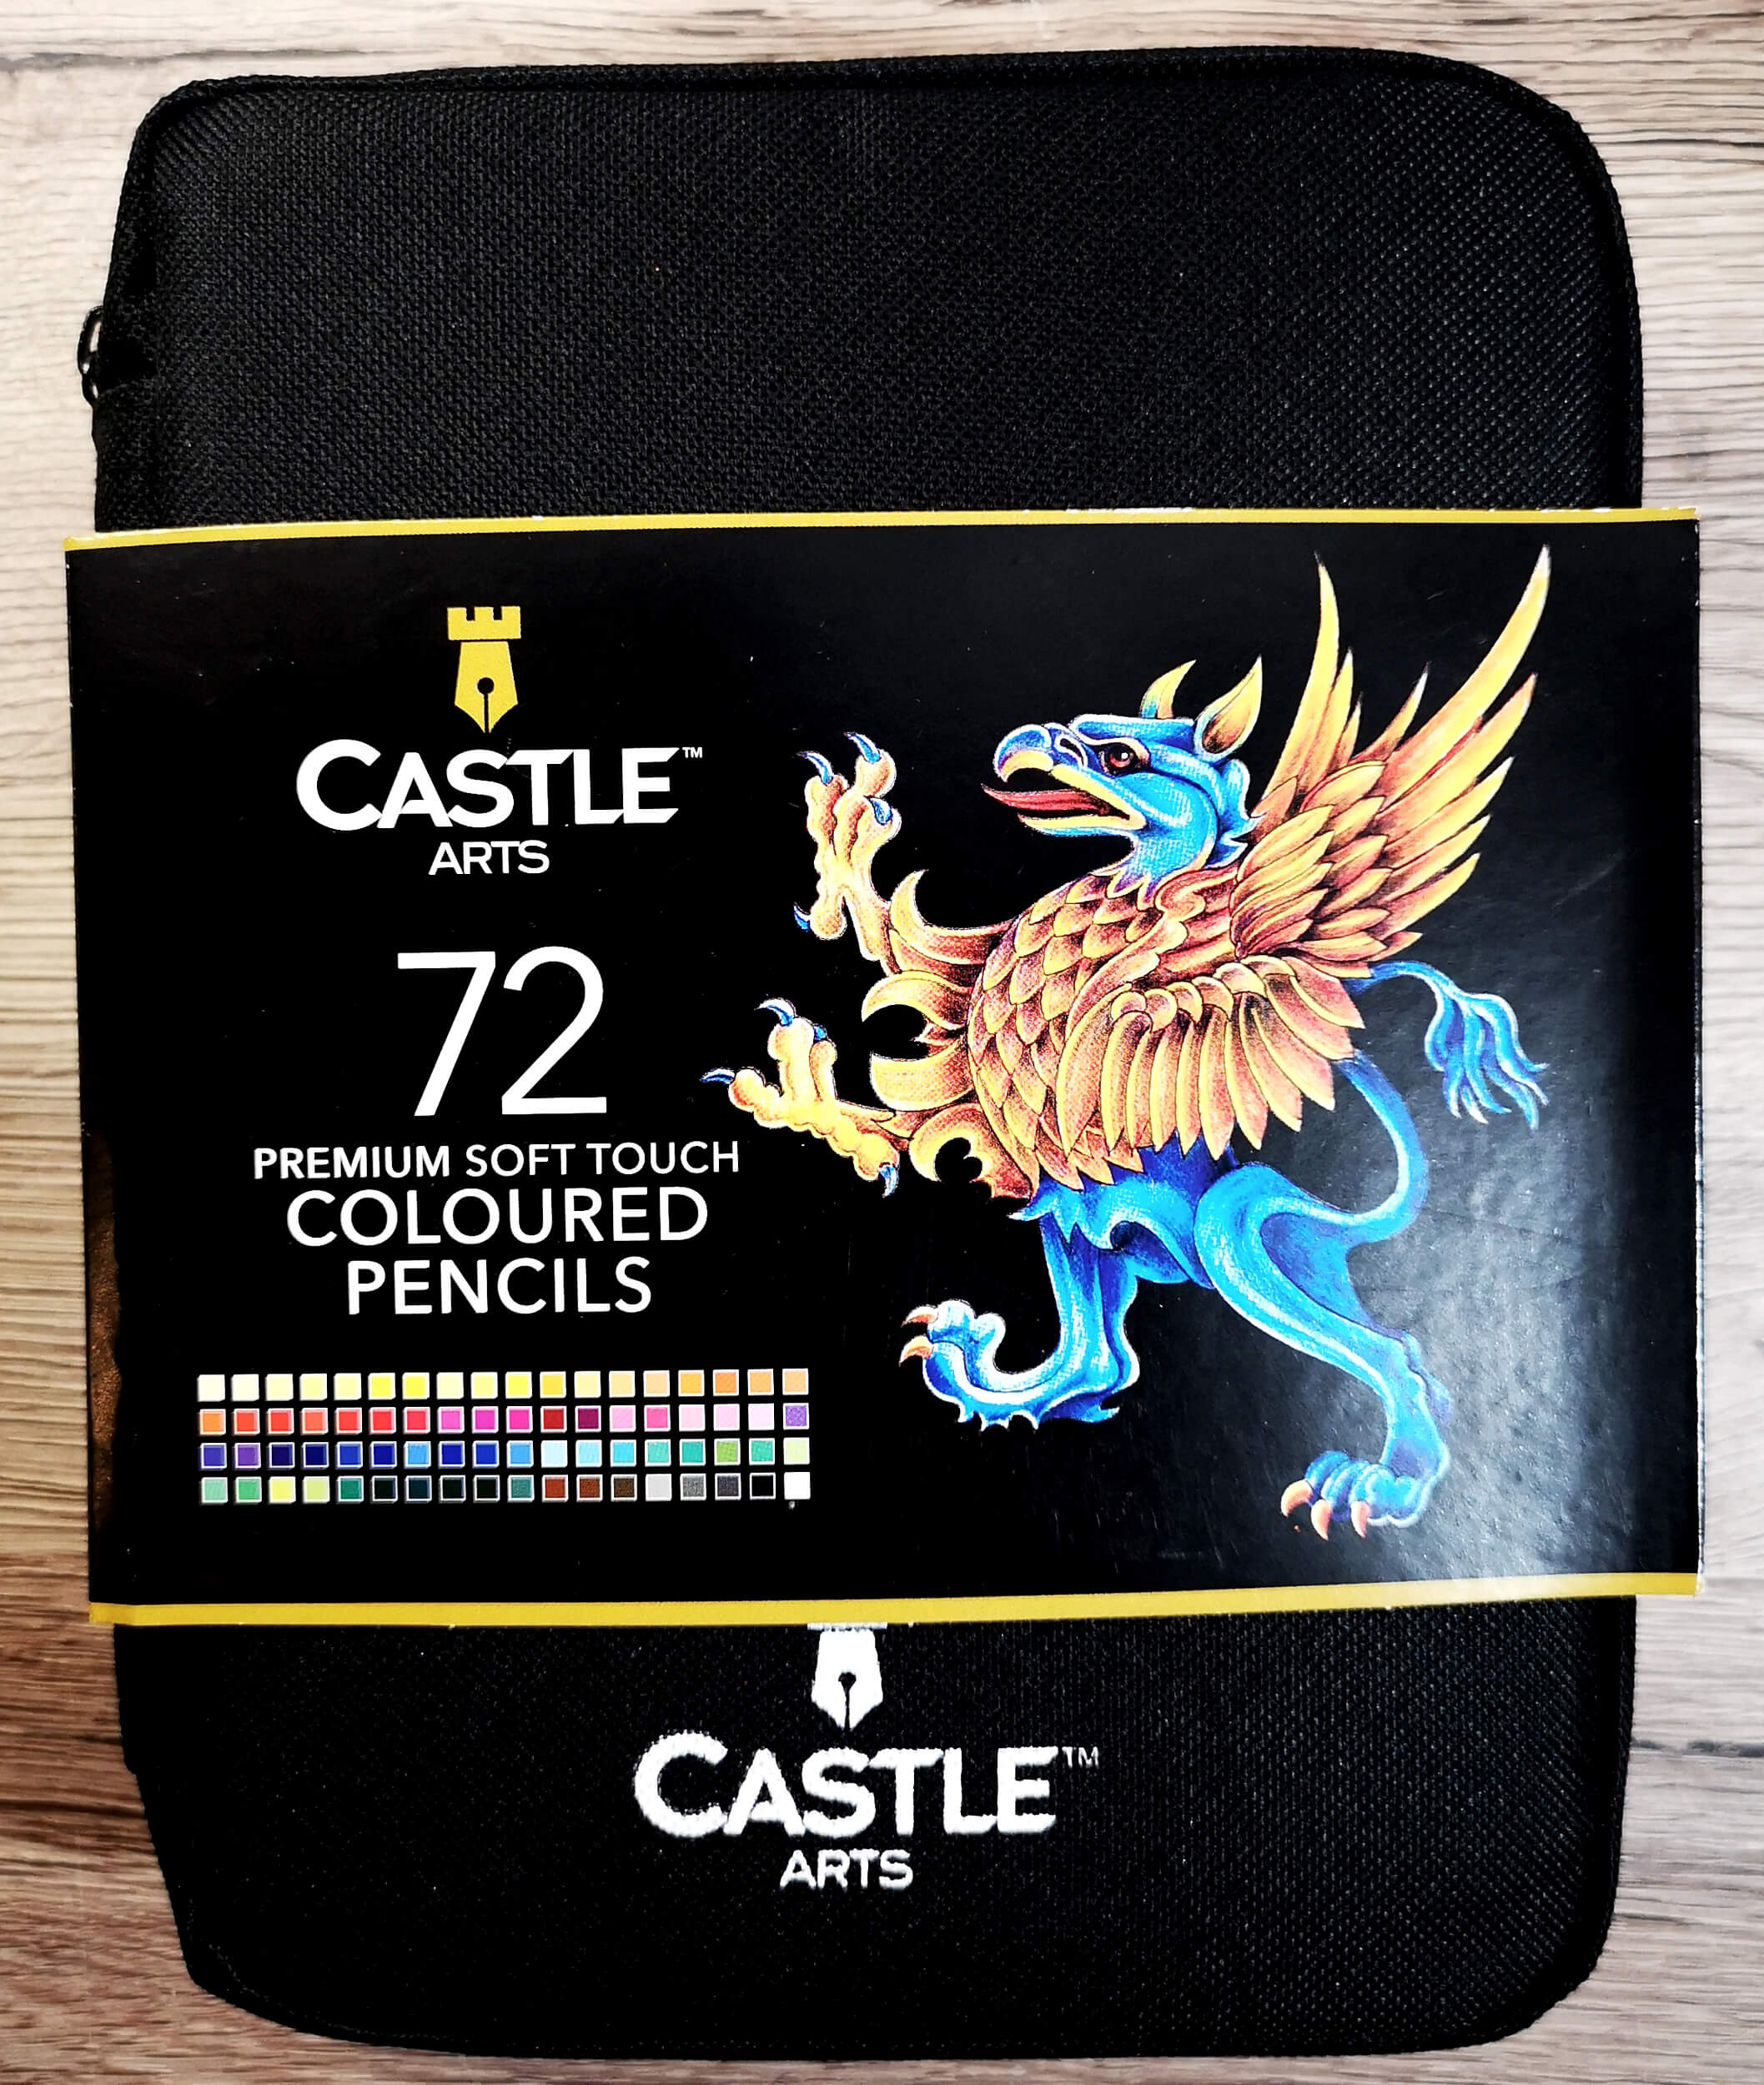 Review: Castle Arts Premium Soft Touch Coloured Pencils